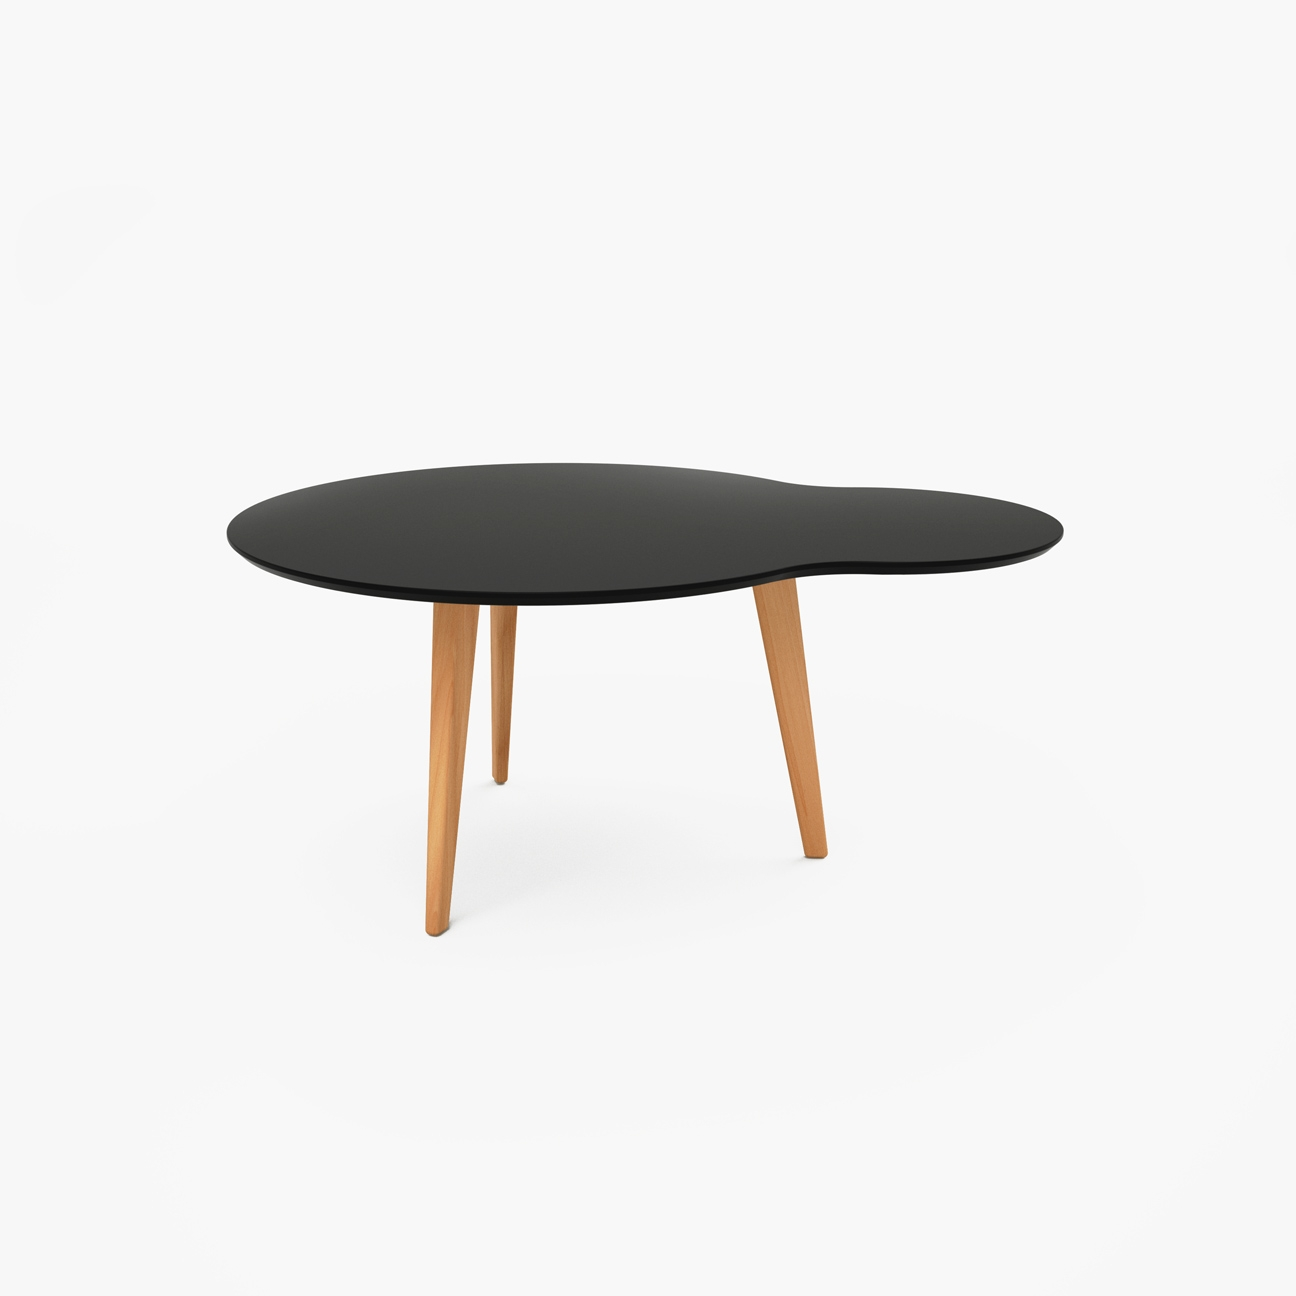 HOME | INTERIOR | FURNITURE | DINING TABLE